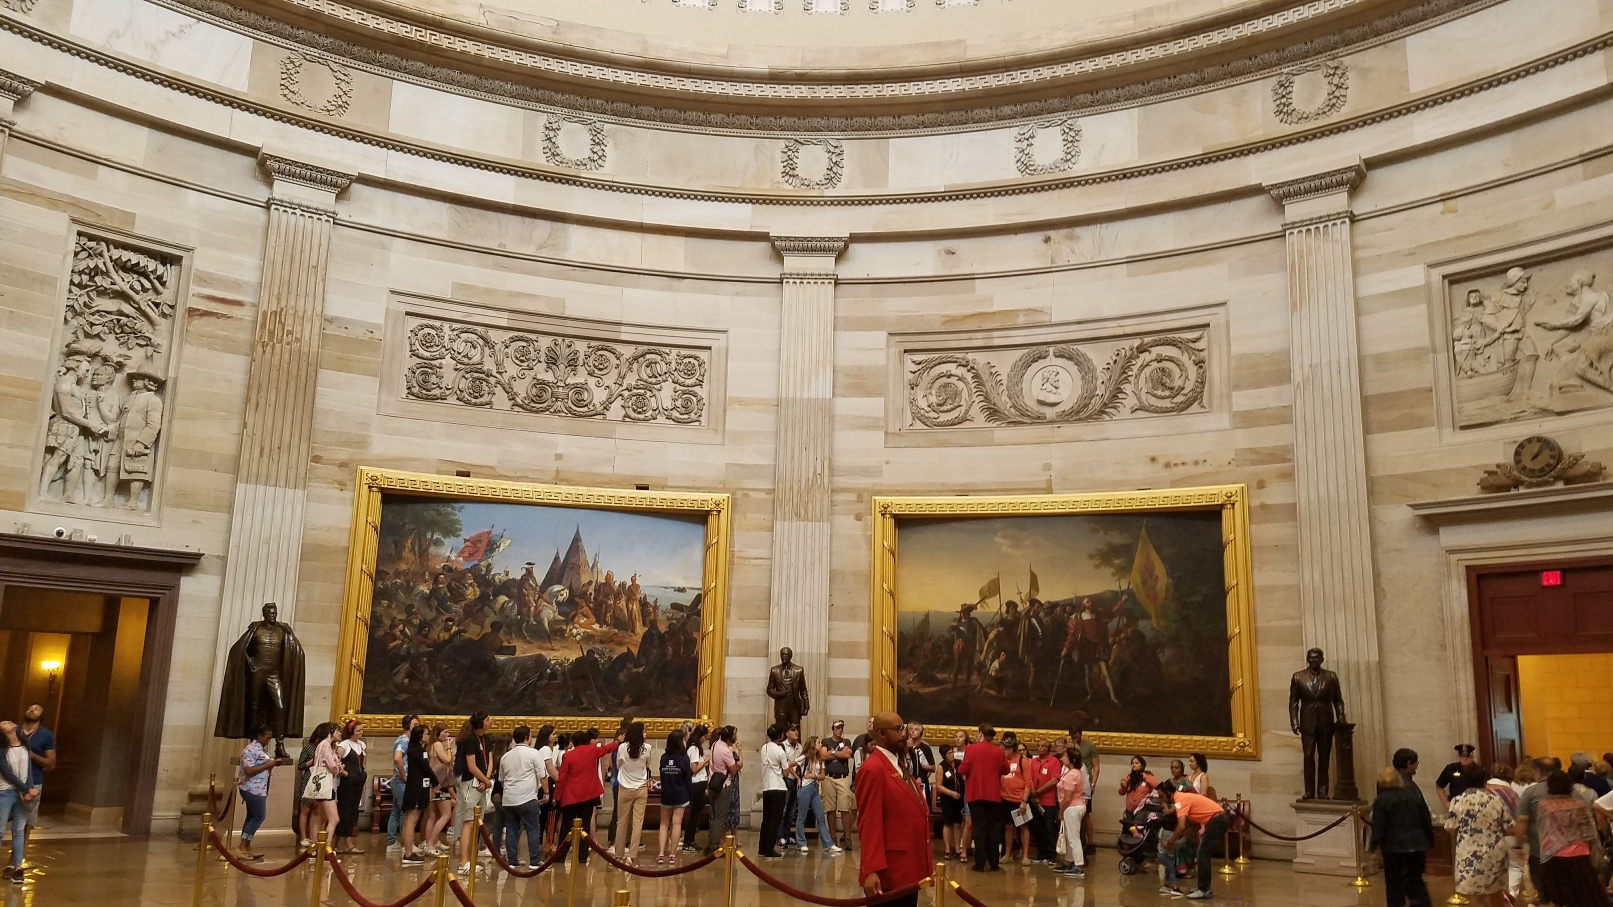 Paintings in the Great Hall of the rotunda of the U.S. Congress in Washington DC